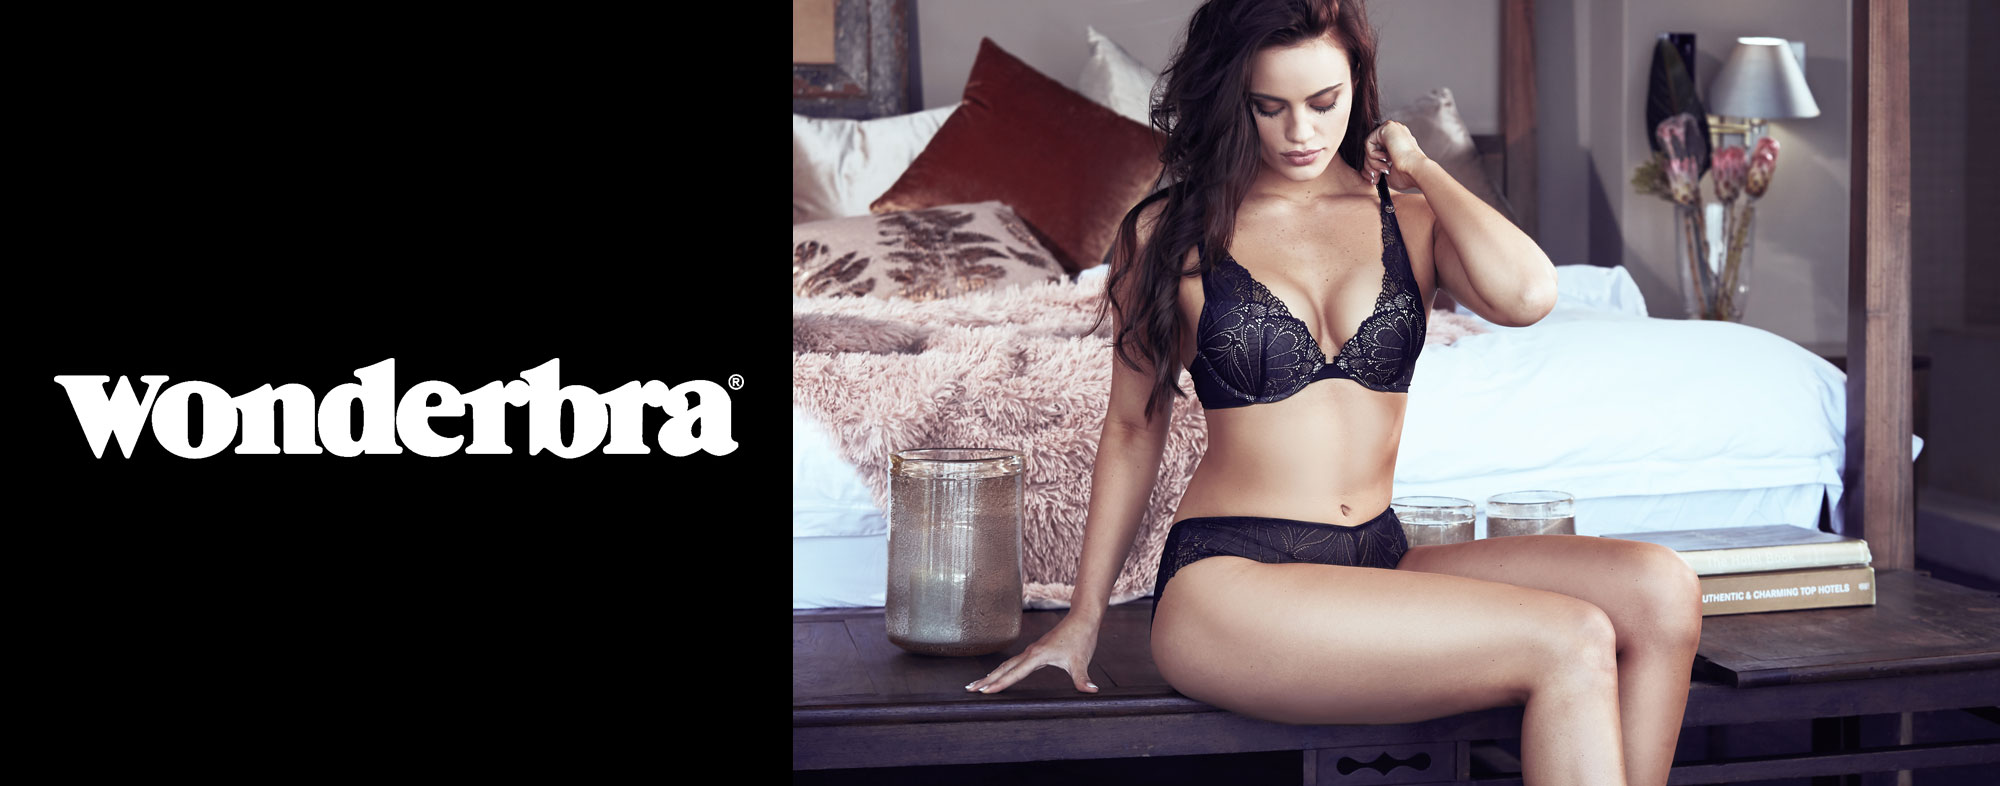 Wonderbra - Full Effect Lace